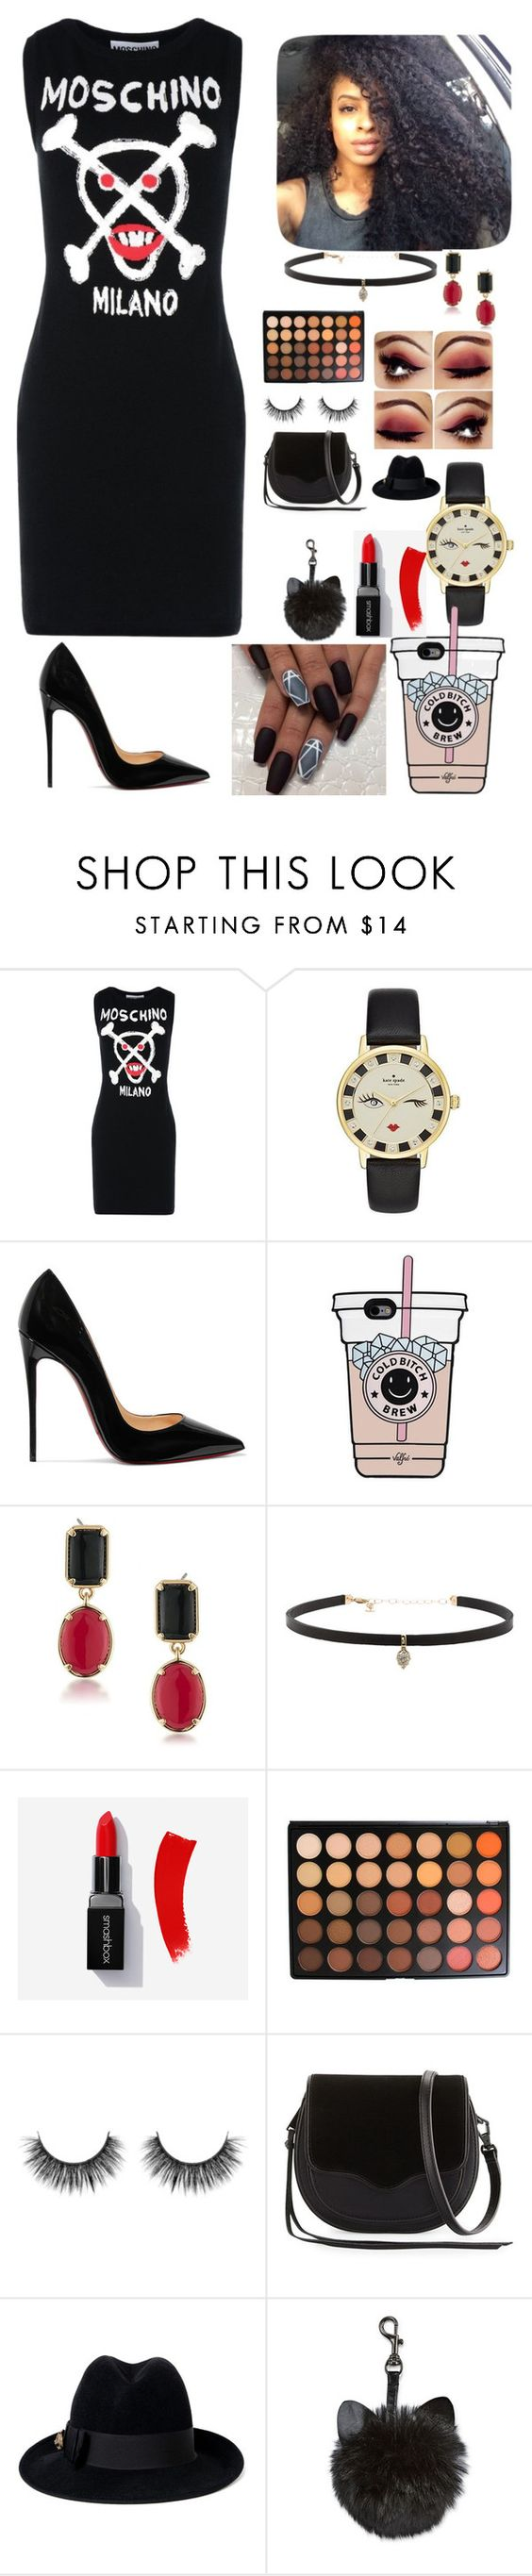 """""""....Bam"""" by rider4life12 ❤ liked on Polyvore featuring Moschino, Kate Spade, Christian Louboutin, 1st & Gorgeous by Carolee, Carbon & Hyde, Morphe, Rebecca Minkoff and Gucci"""